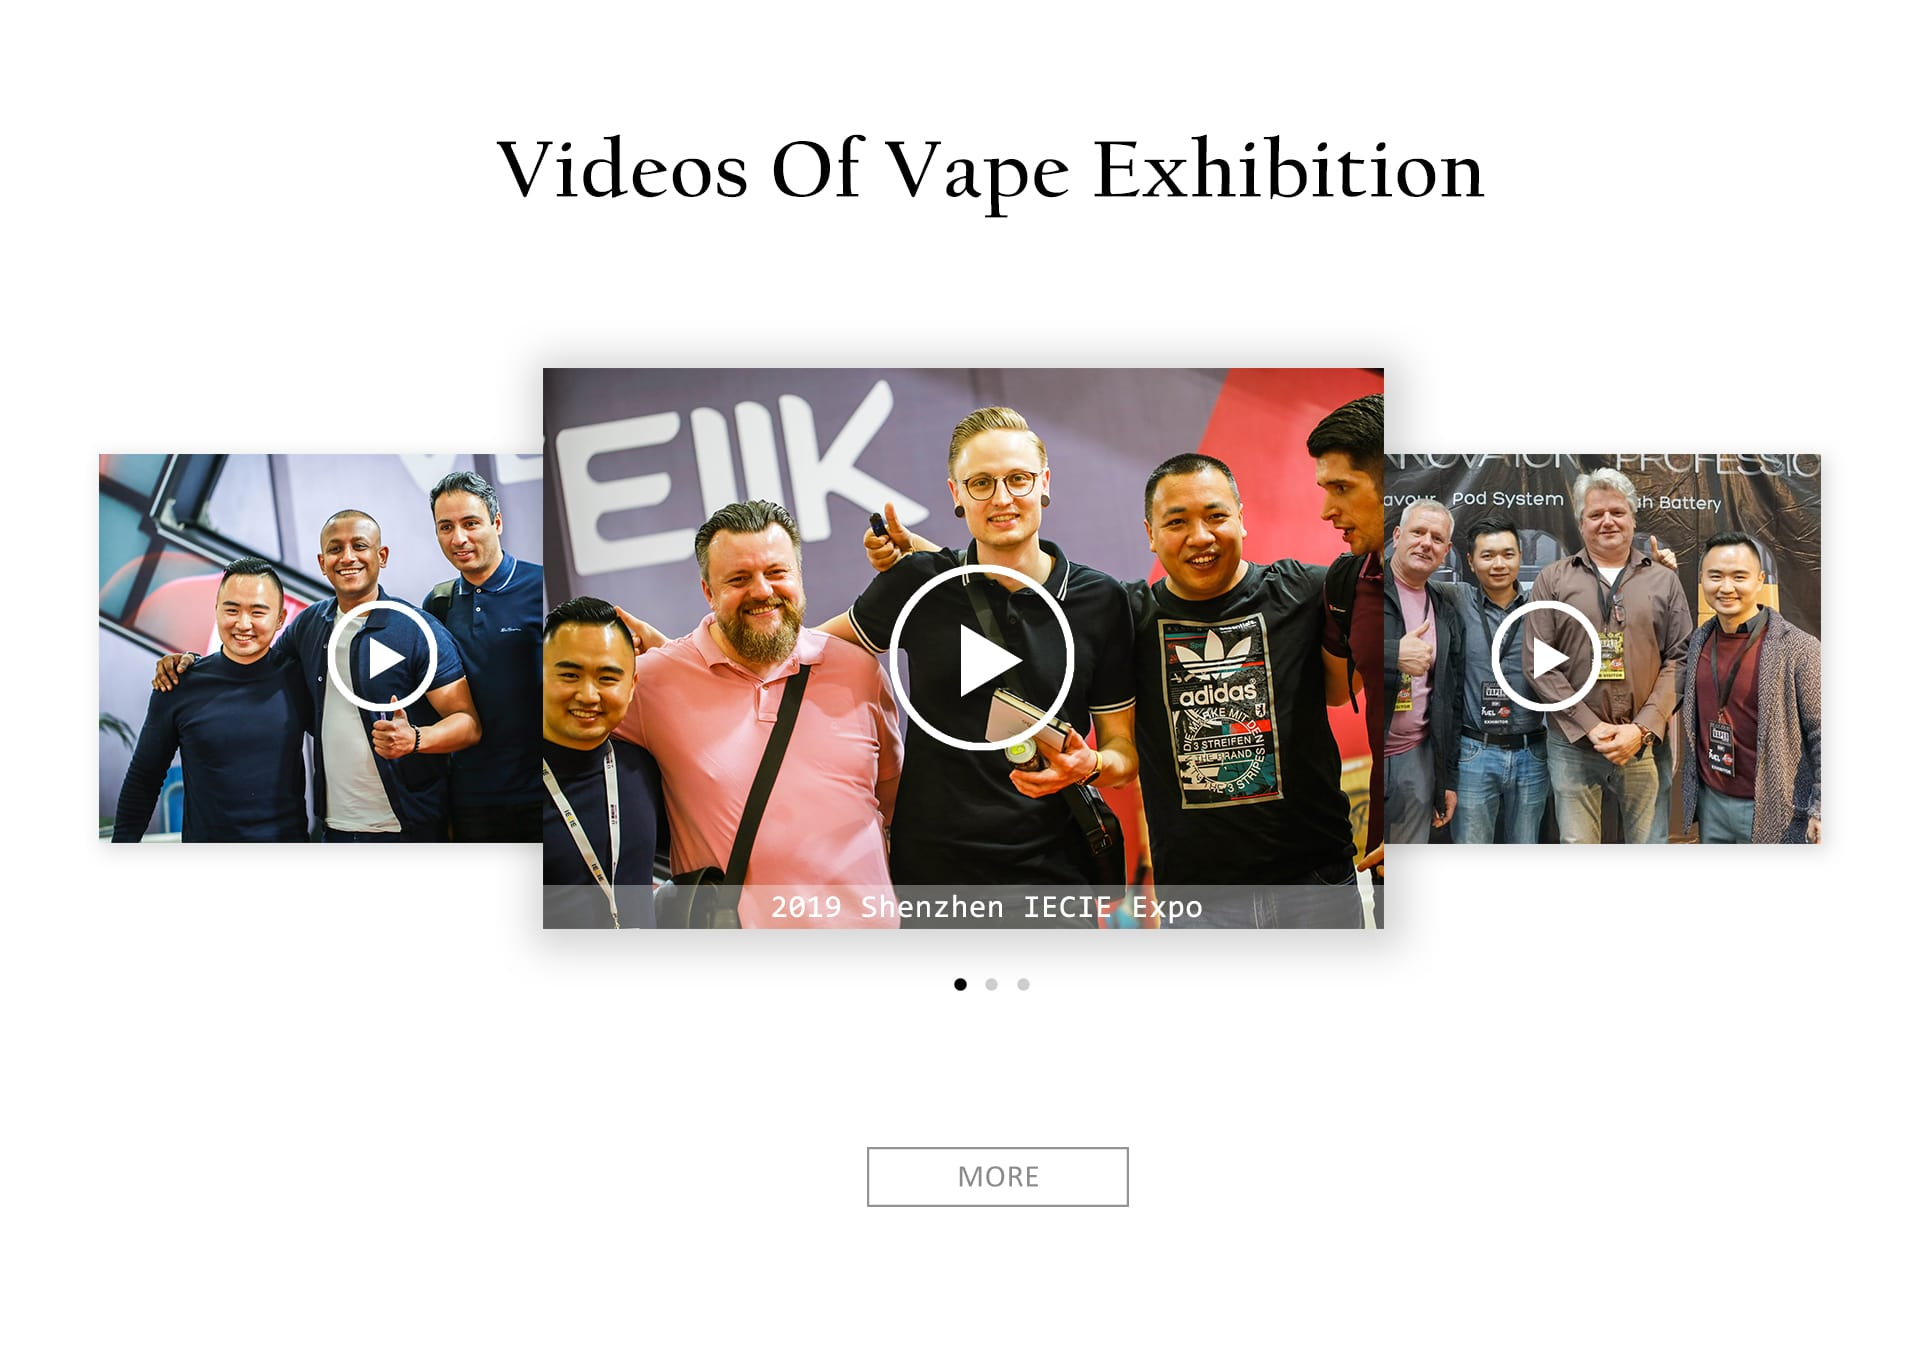 video of vape exhibition